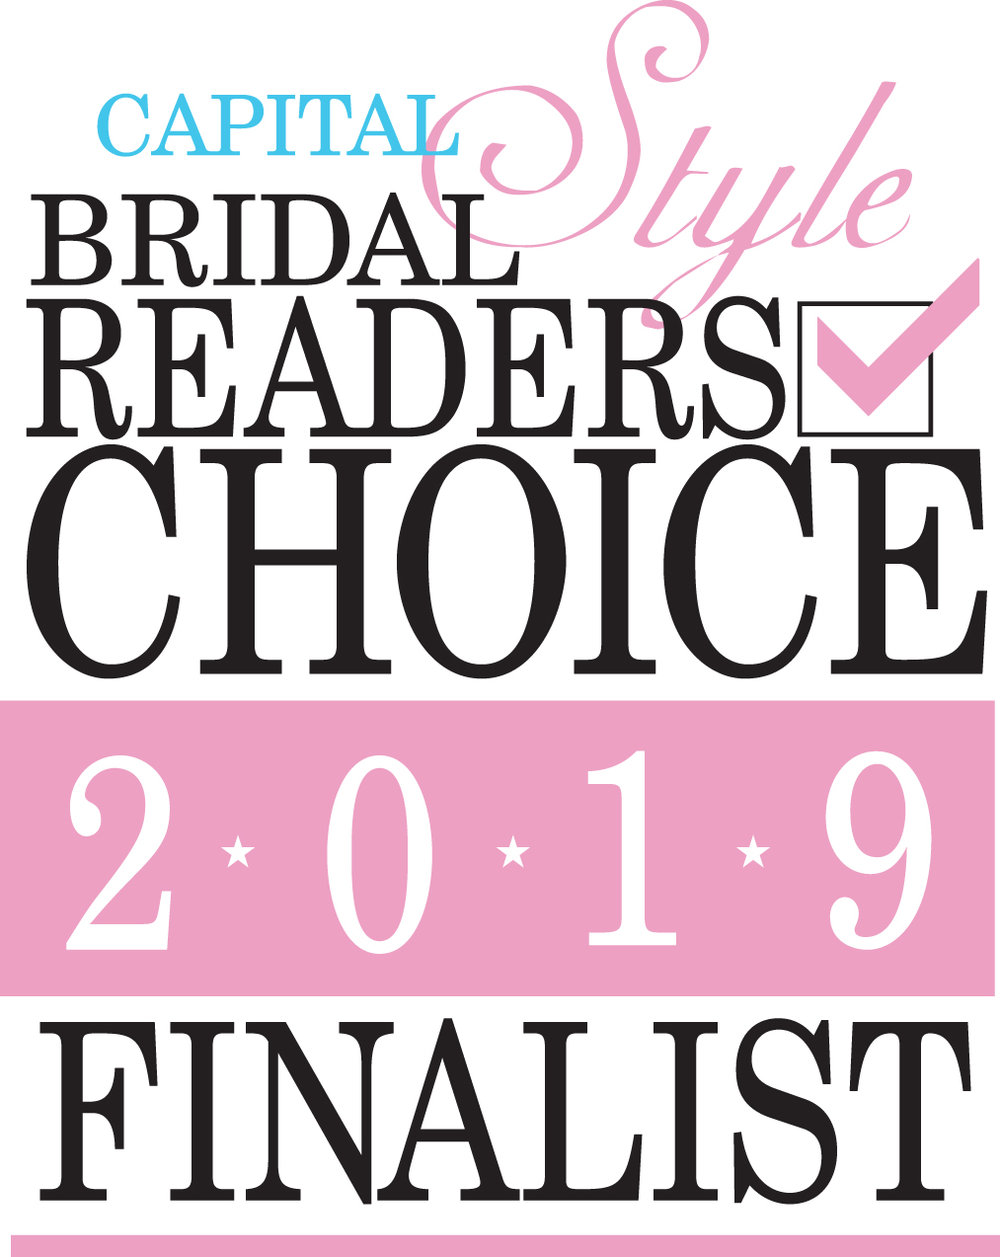 capstyle_bridal_readers_choice_finalist_2019.jpg